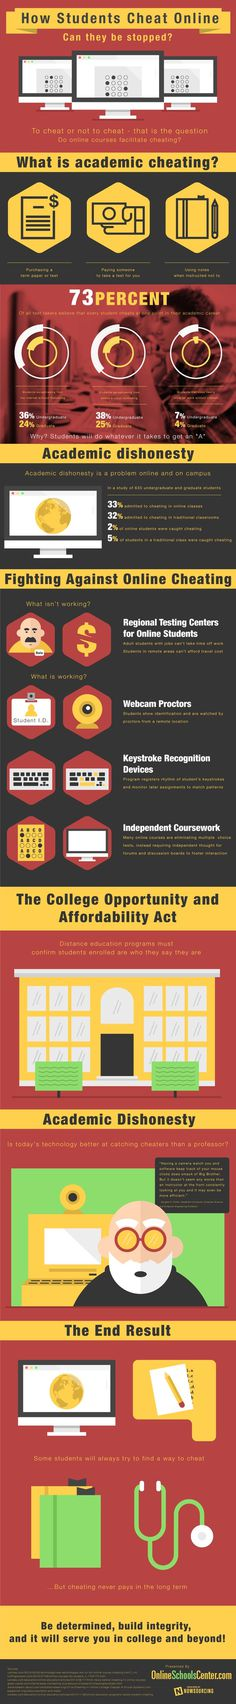 What can be done about academic dishonesty in online classes? Check out this infographic for more.